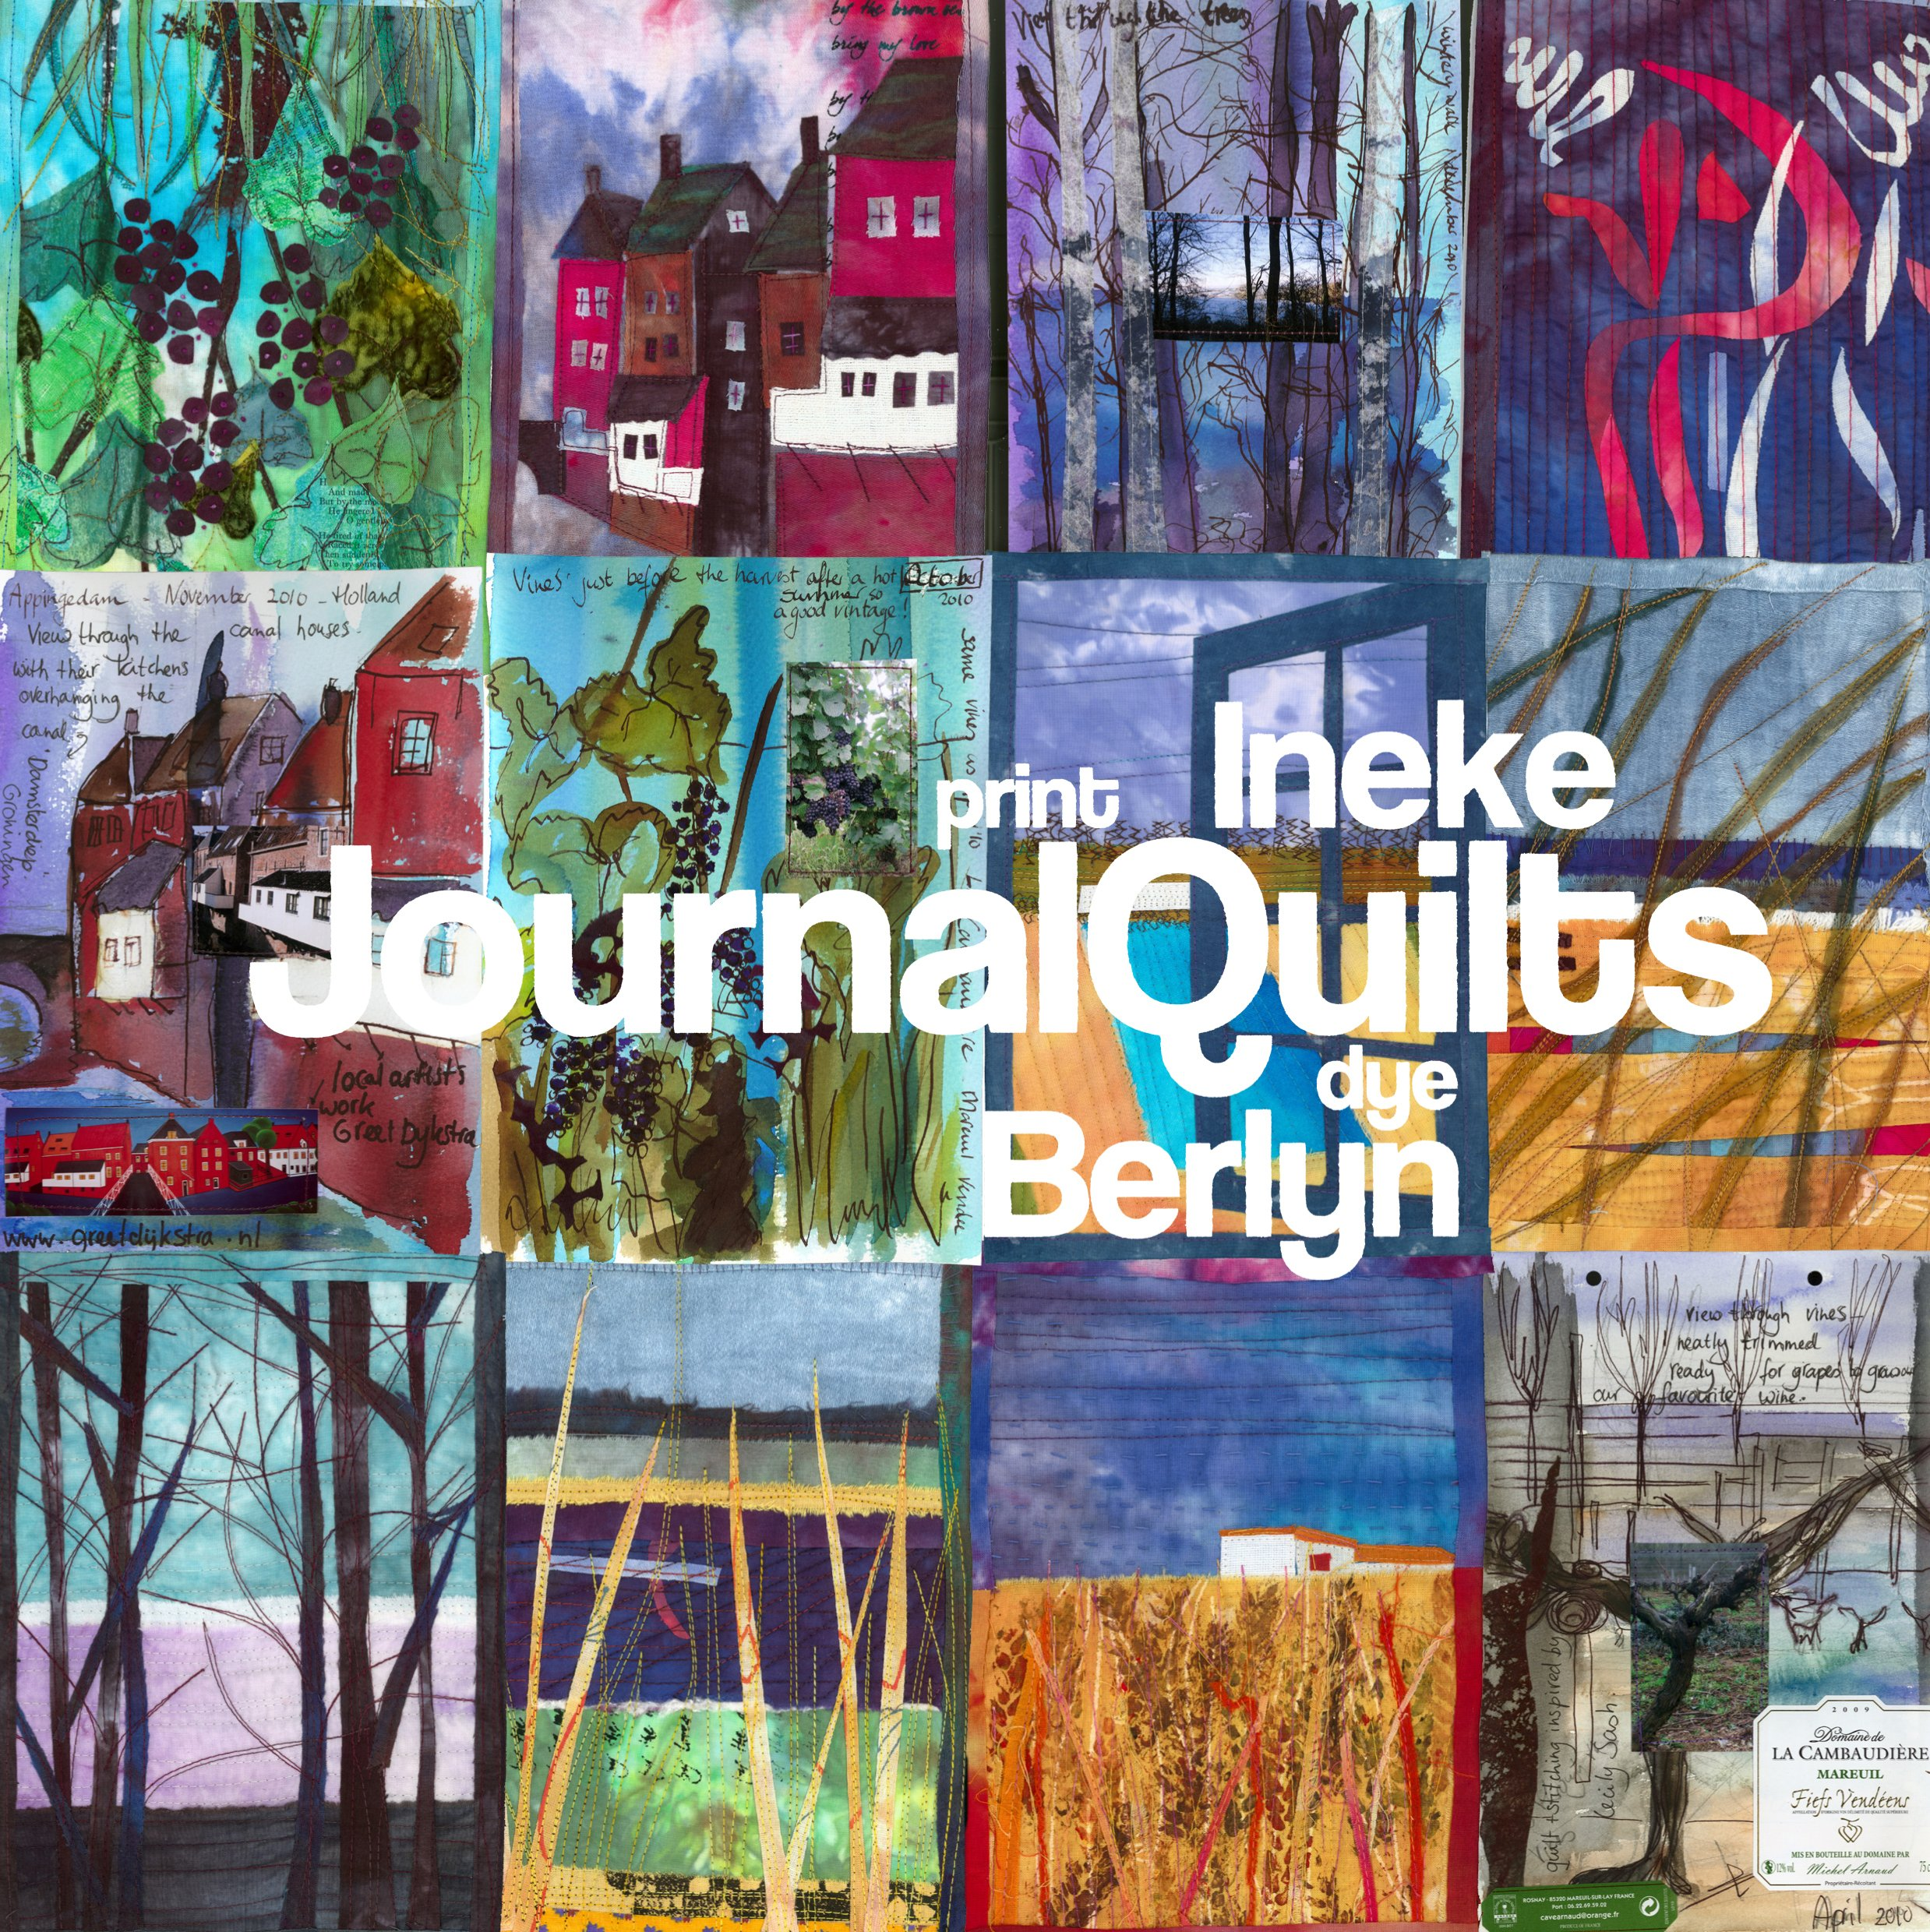 Dye, Print And Journal Quilts by Ineke Berlyn